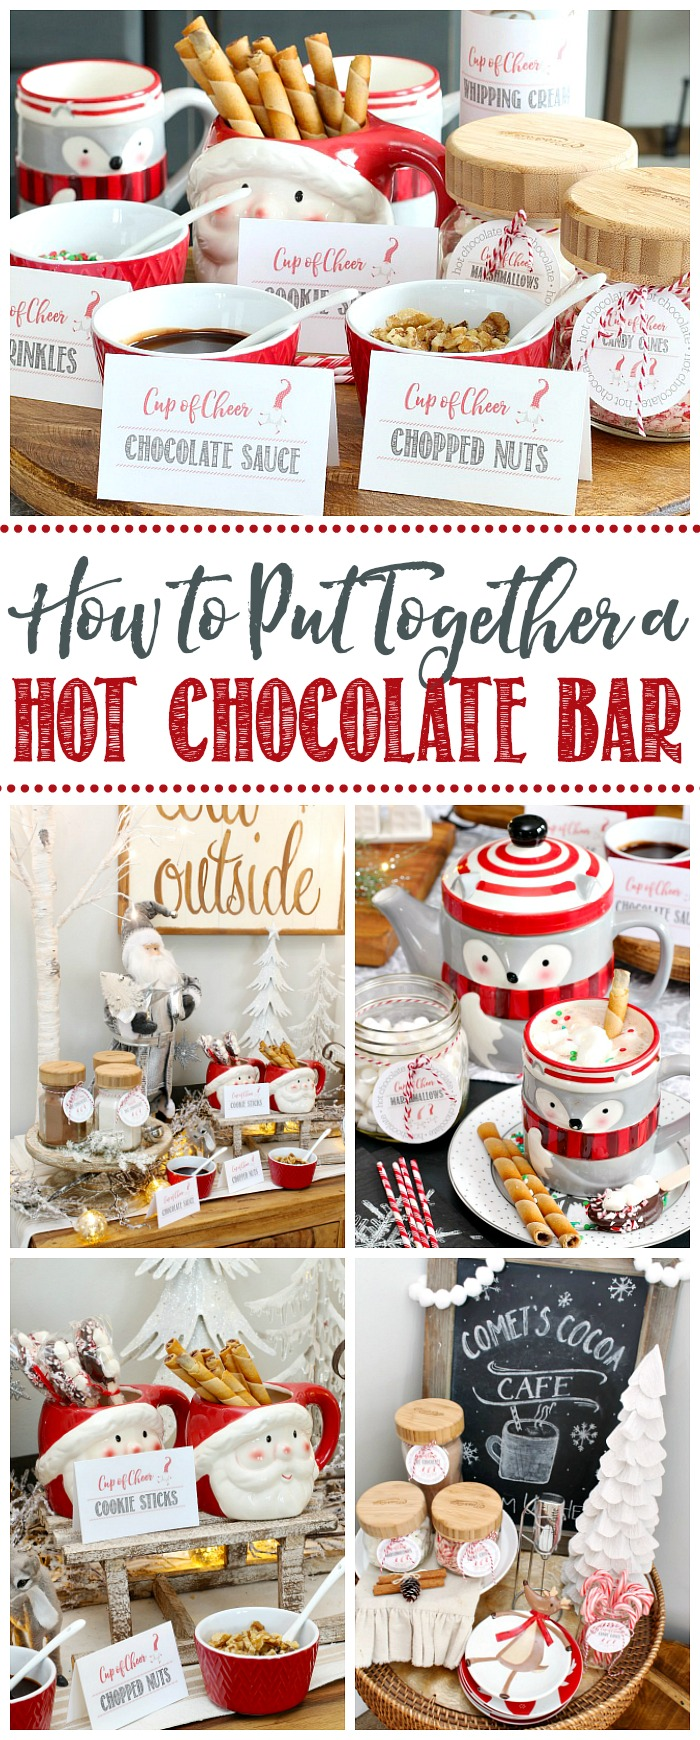 Cute ideas to put together a fun hot chocolate bar.